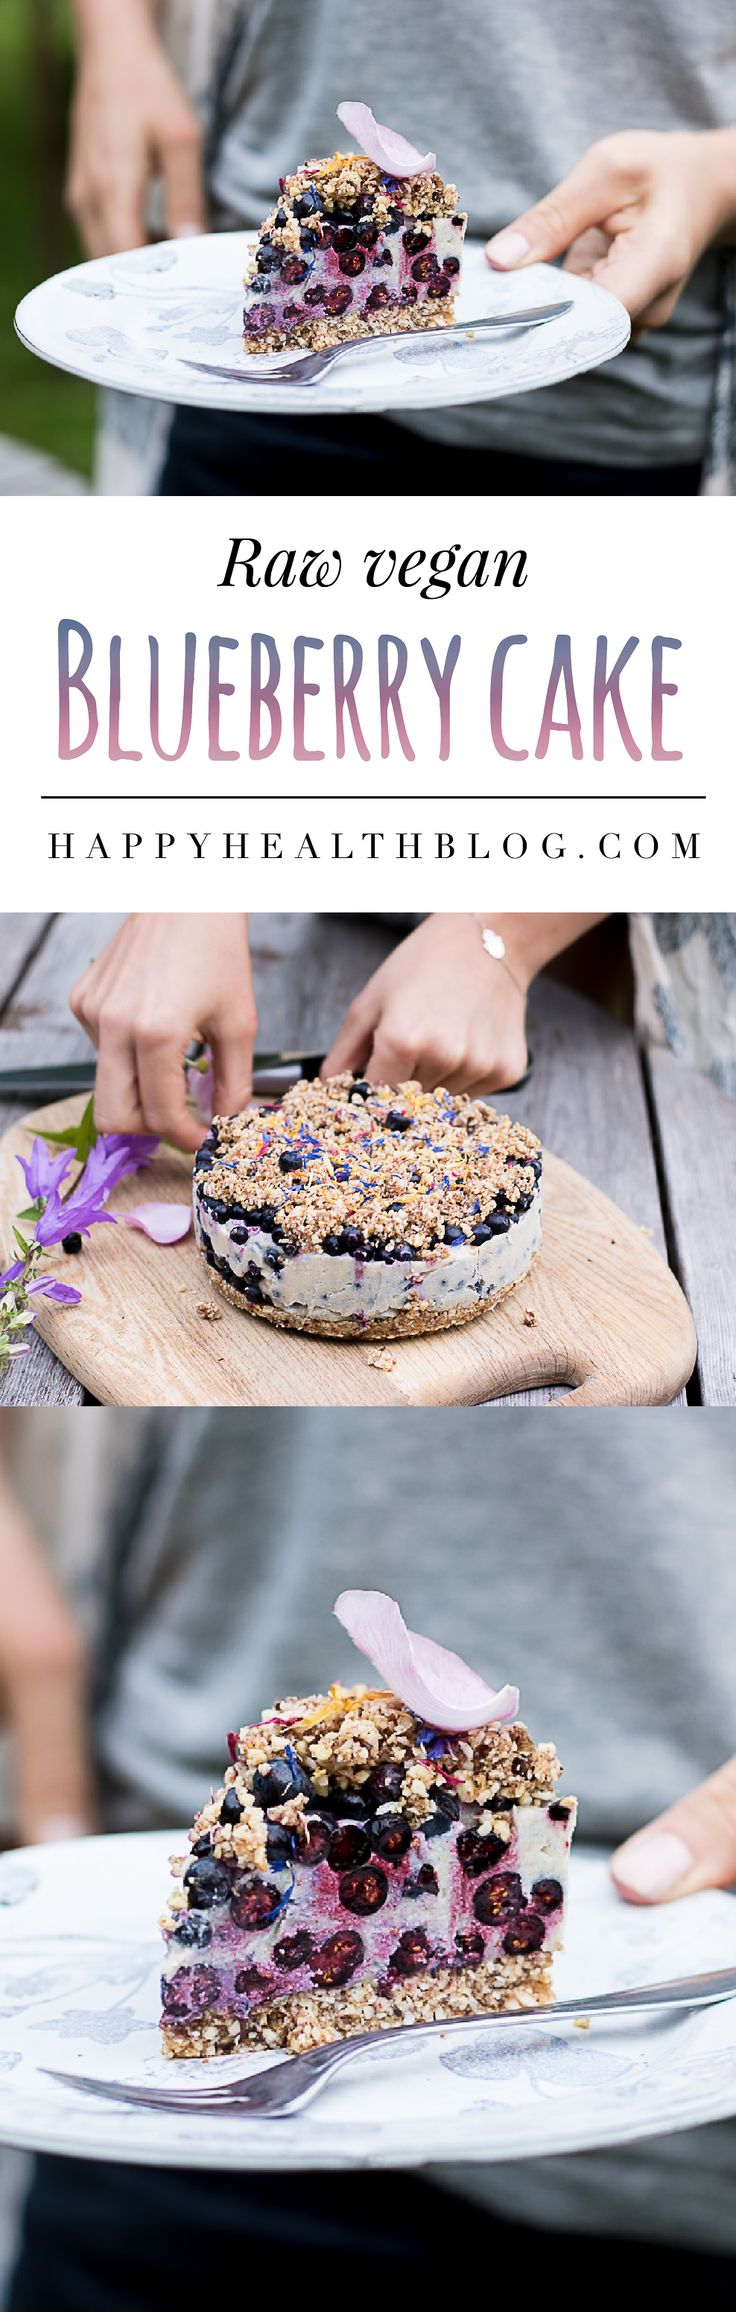 Raw blueberry cake - The blueberry season in Sweden runs from June to September. Here is a lovely raw food cake that makes the most of fresh blueberries! Raw blueberry cake  A few months back, during summer, I had such an amazing day with my lovely friend Evelina! We spent the day in the Swedish forest, hanged out at her place, baked a raw cake with our freshly picked blueberries and enjoyed her lovely garden! I'm a real city-rat! I can probably count the times I have been in the woods on…